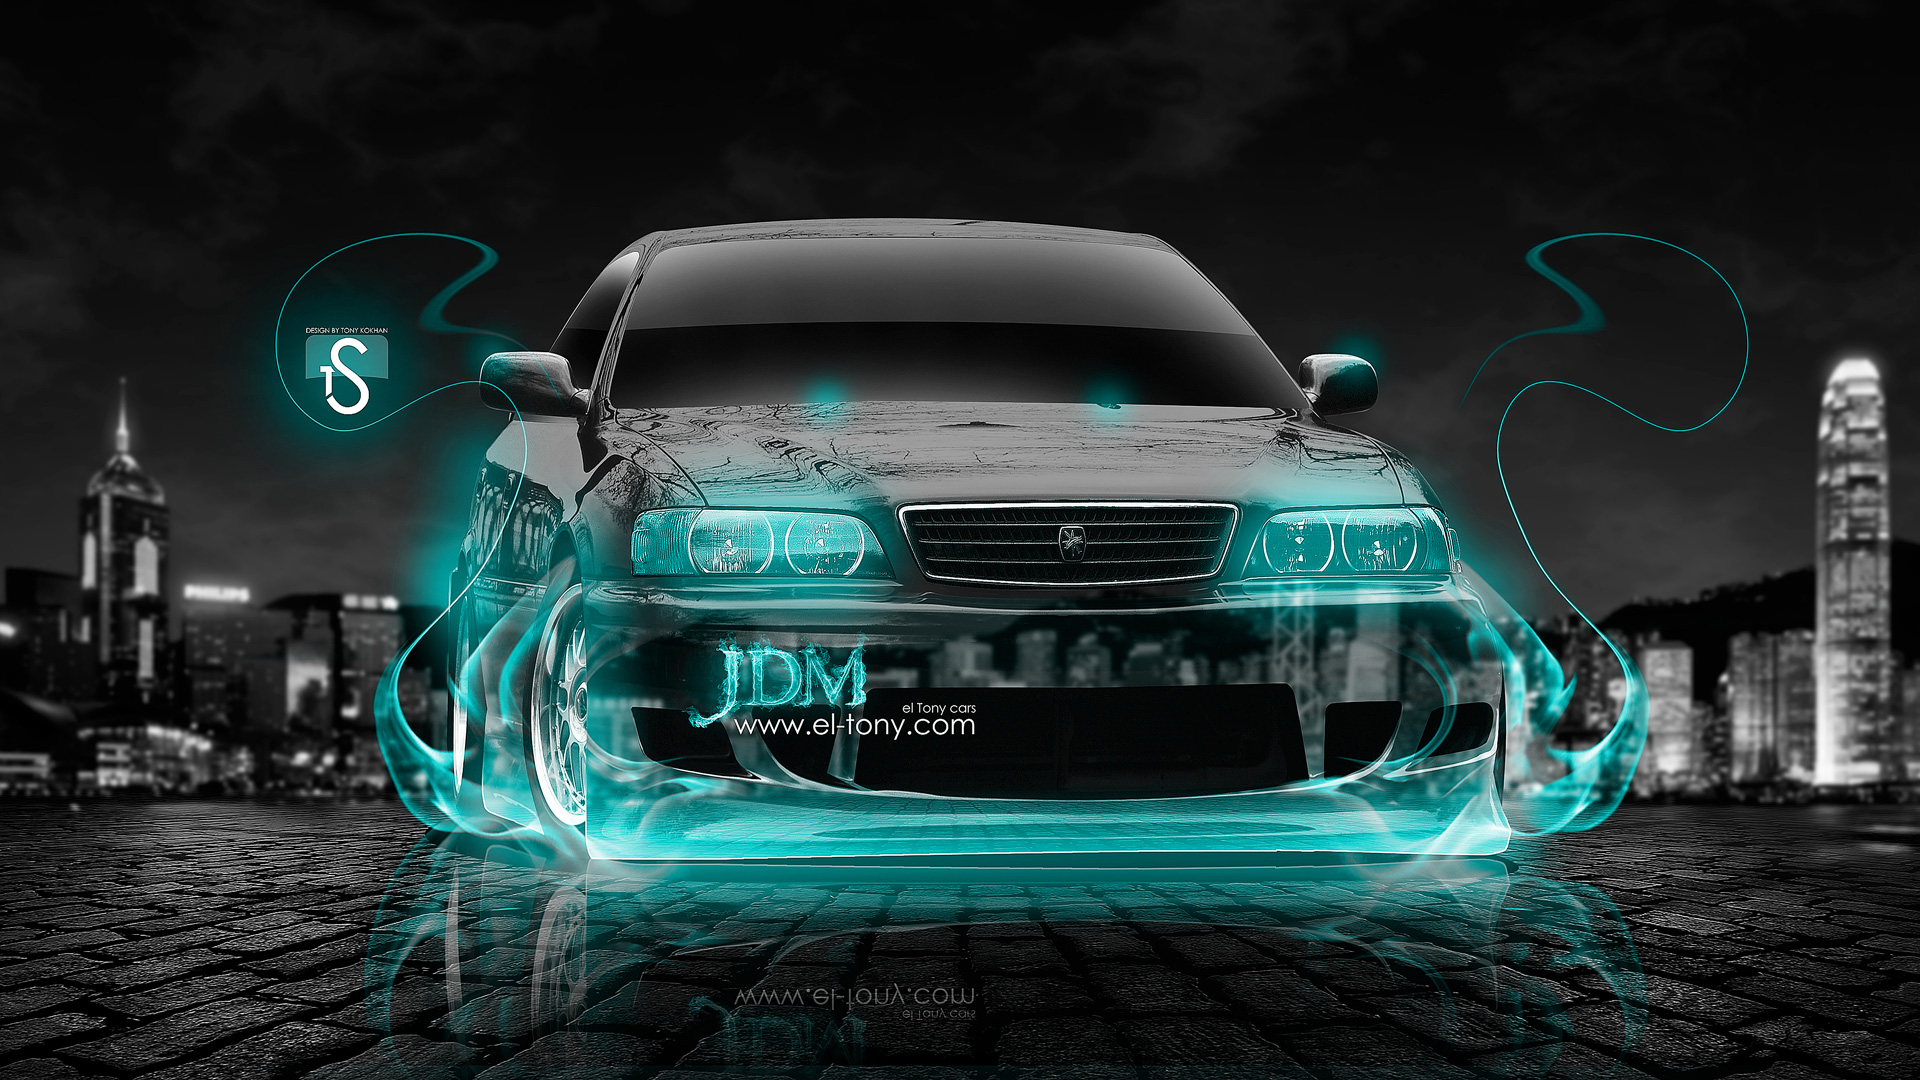 Toyota Chaser JZX100 JDM Turquoise Fire Crystal Car .